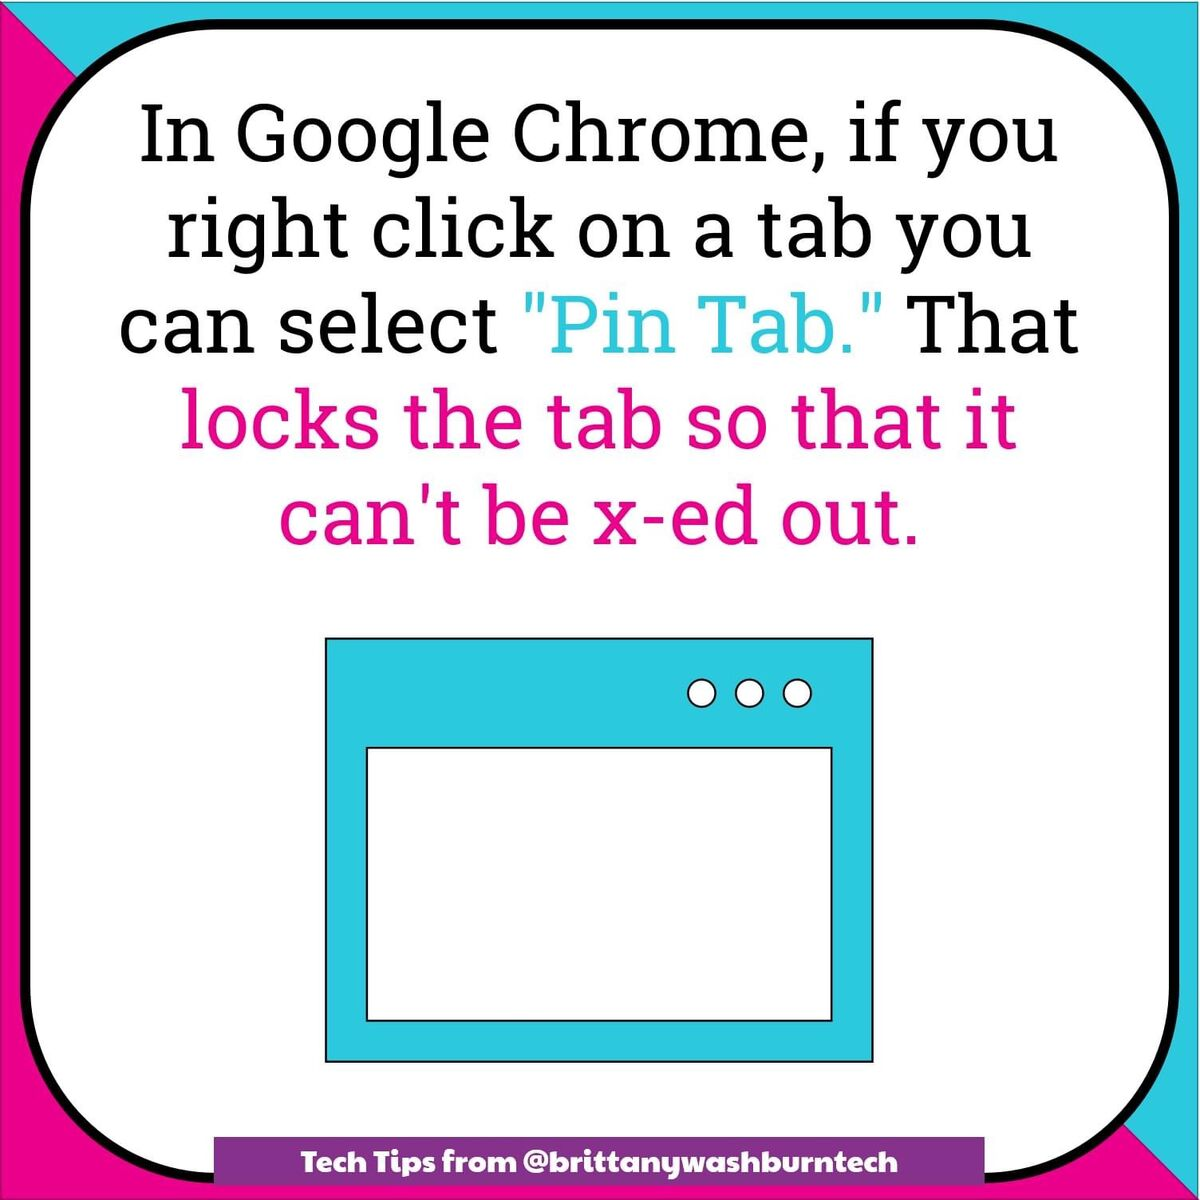 google chrome right click on tab, select pin-tab to lock